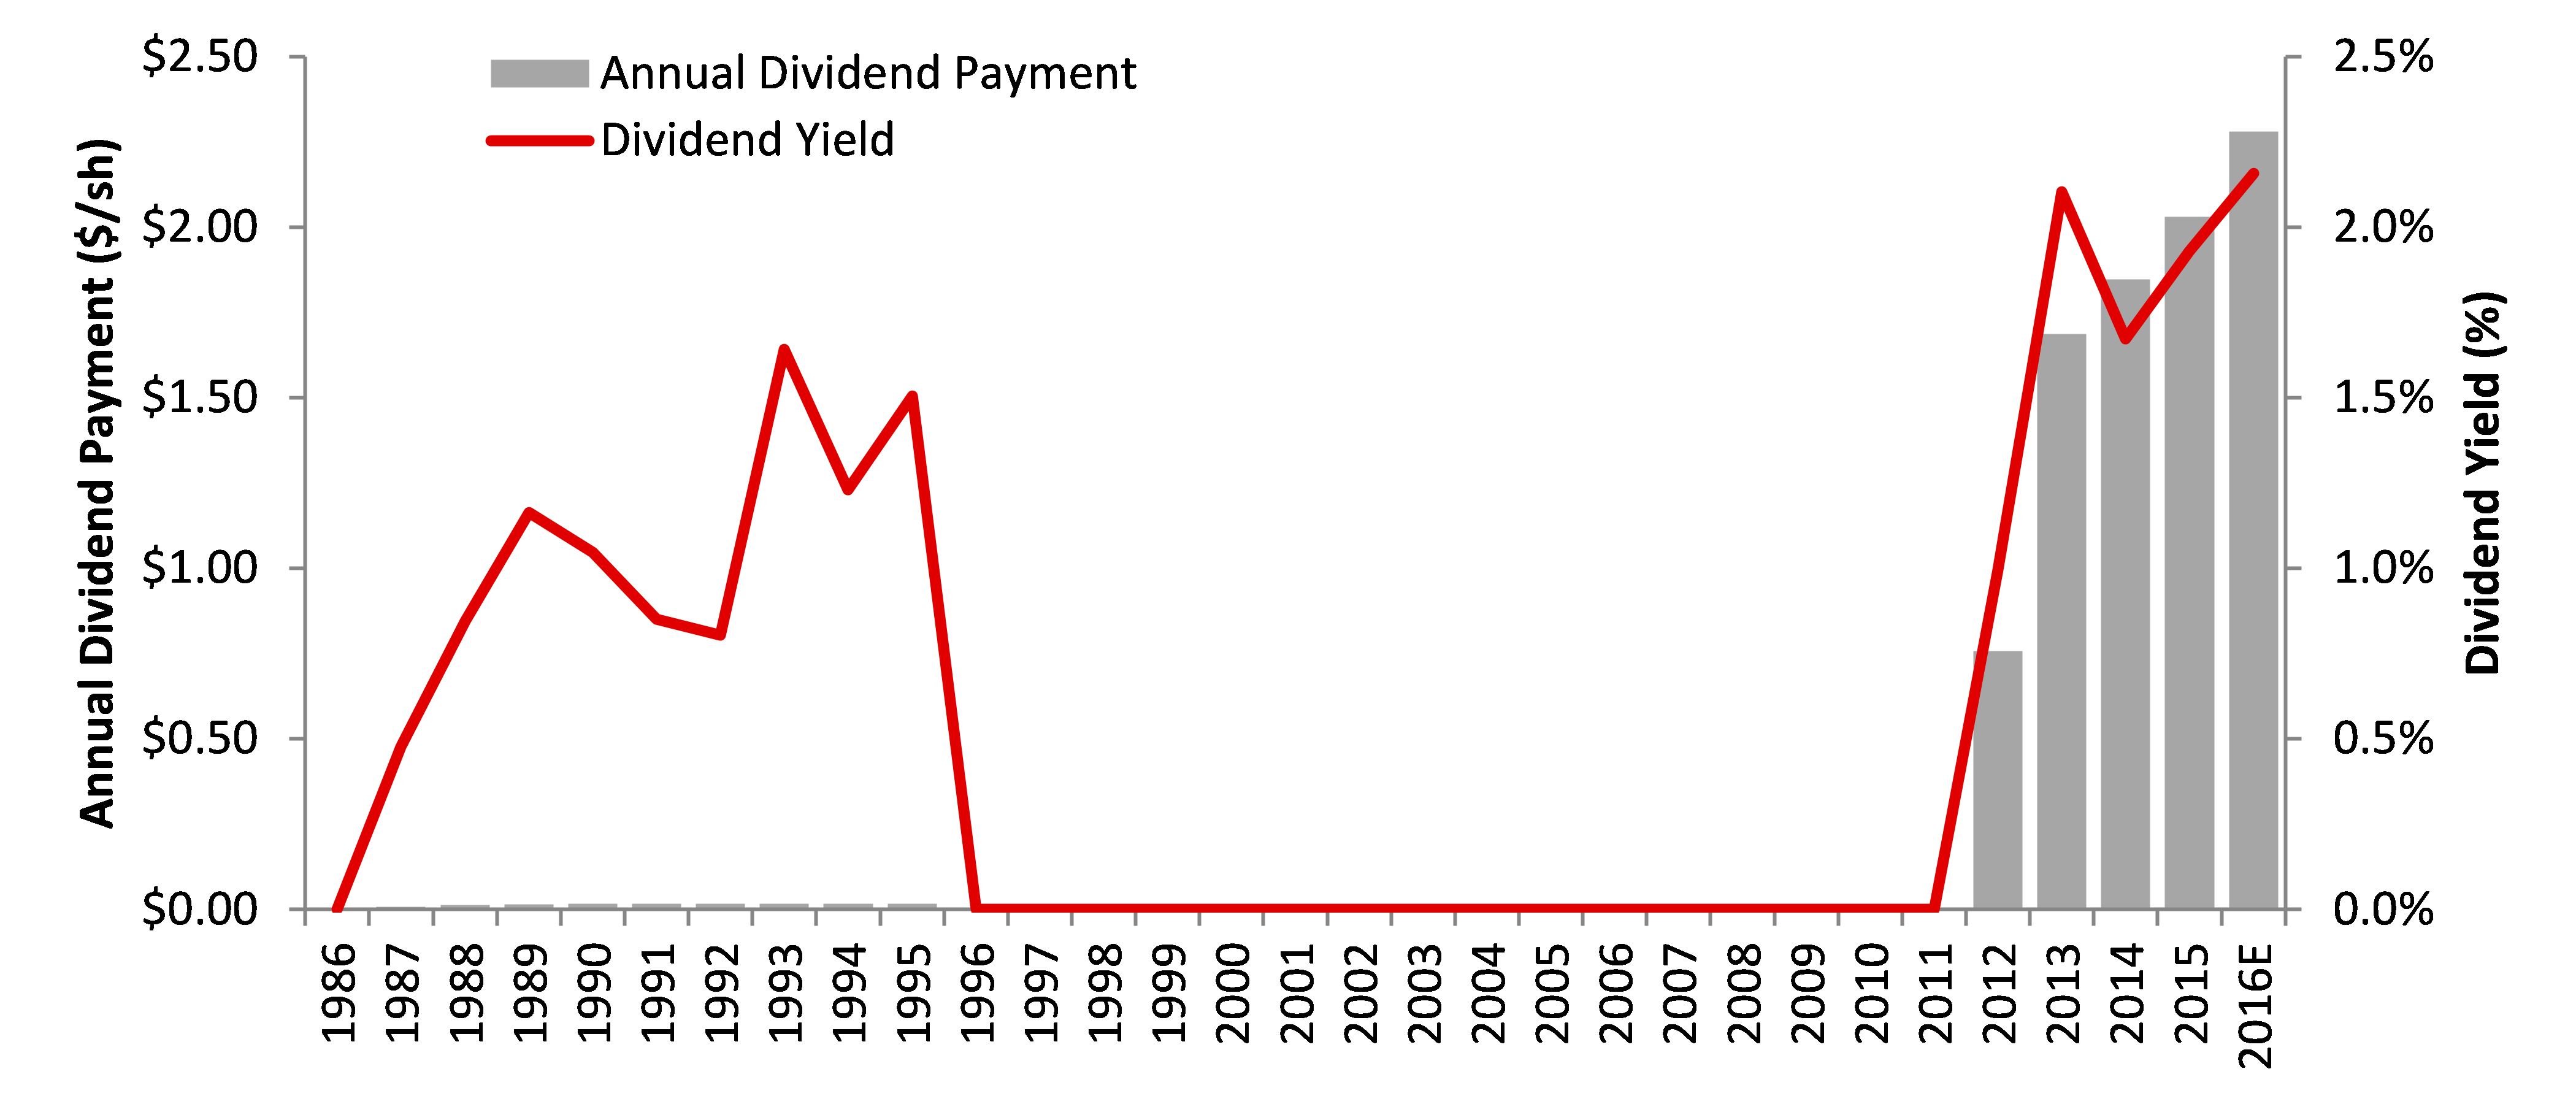 Apple Dividend History